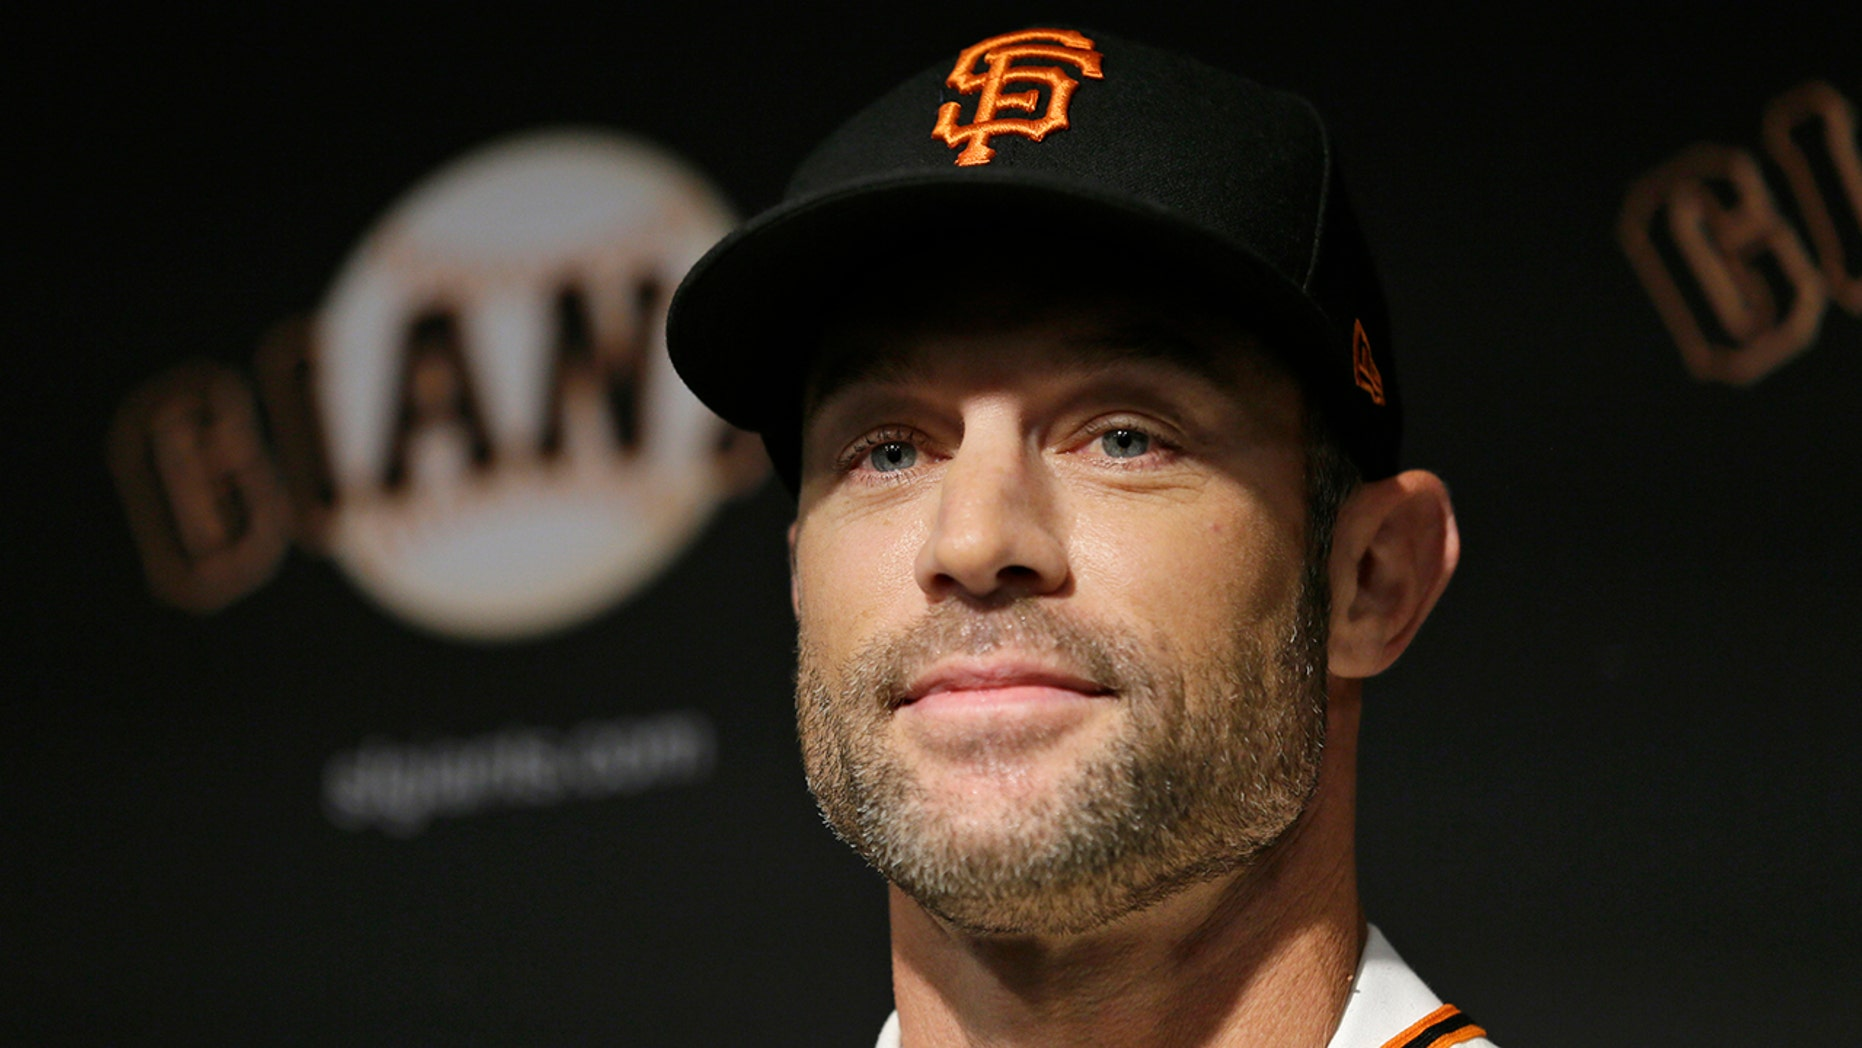 San Francisco Giants manager Gabe Kapler smiles after being introduced during a news conference at Oracle Park Wednesday, Nov. 13, 2019, in San Francisco. Gabe Kapler has been hired as manager of the San Francisco Giants, a month after being fired from the same job by the Philadelphia Phillies. Kapler replaces Bruce Bochy, who retired at the end of the season following 13 years and three championships with San Francisco. (AP Photo/Eric Risberg)